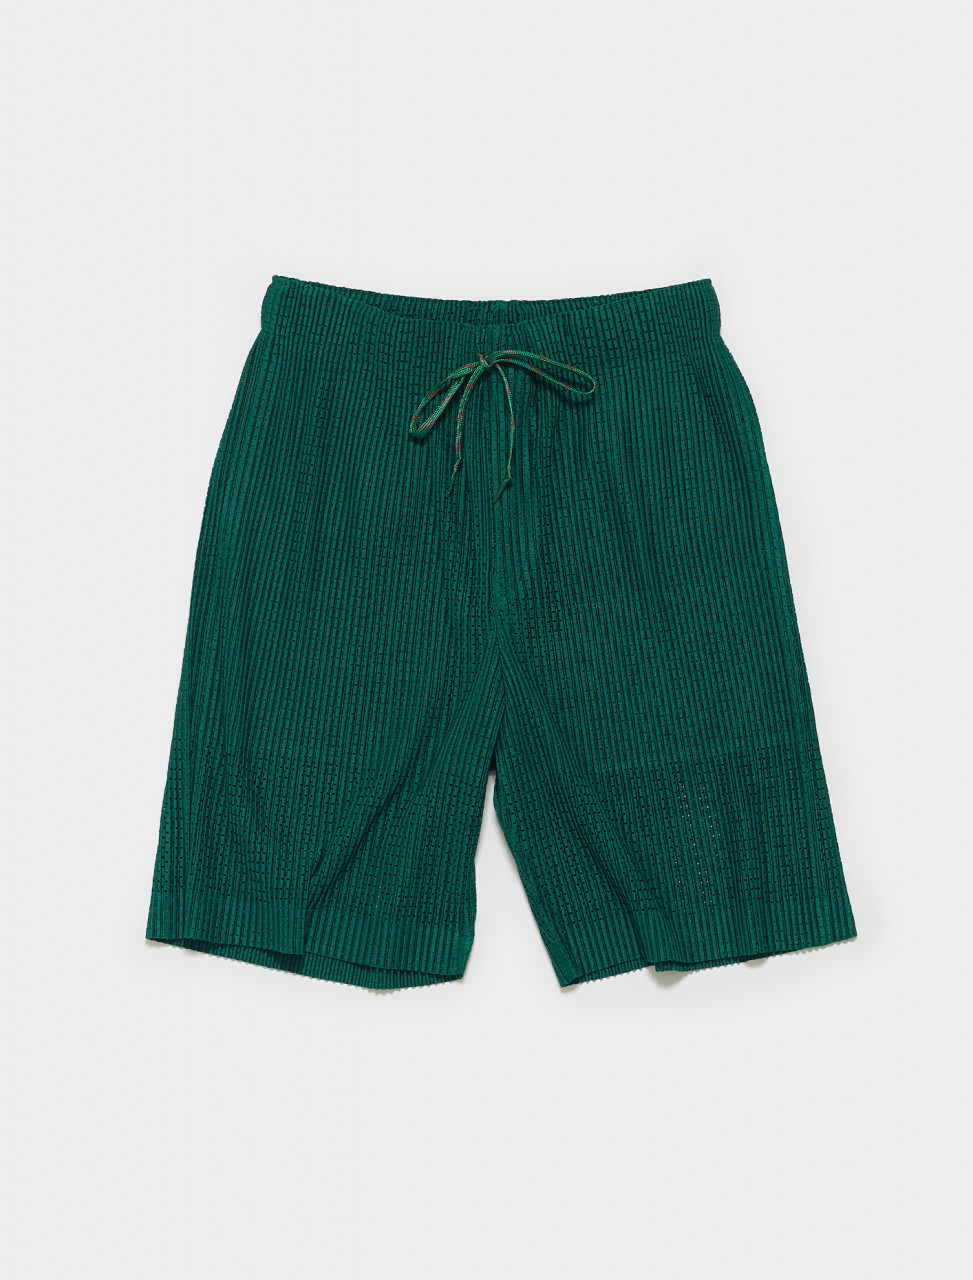 HP16JF142-62 HOMME PLISSE ISSEY MIYAKE PLEATED SHORTS IN GREEN